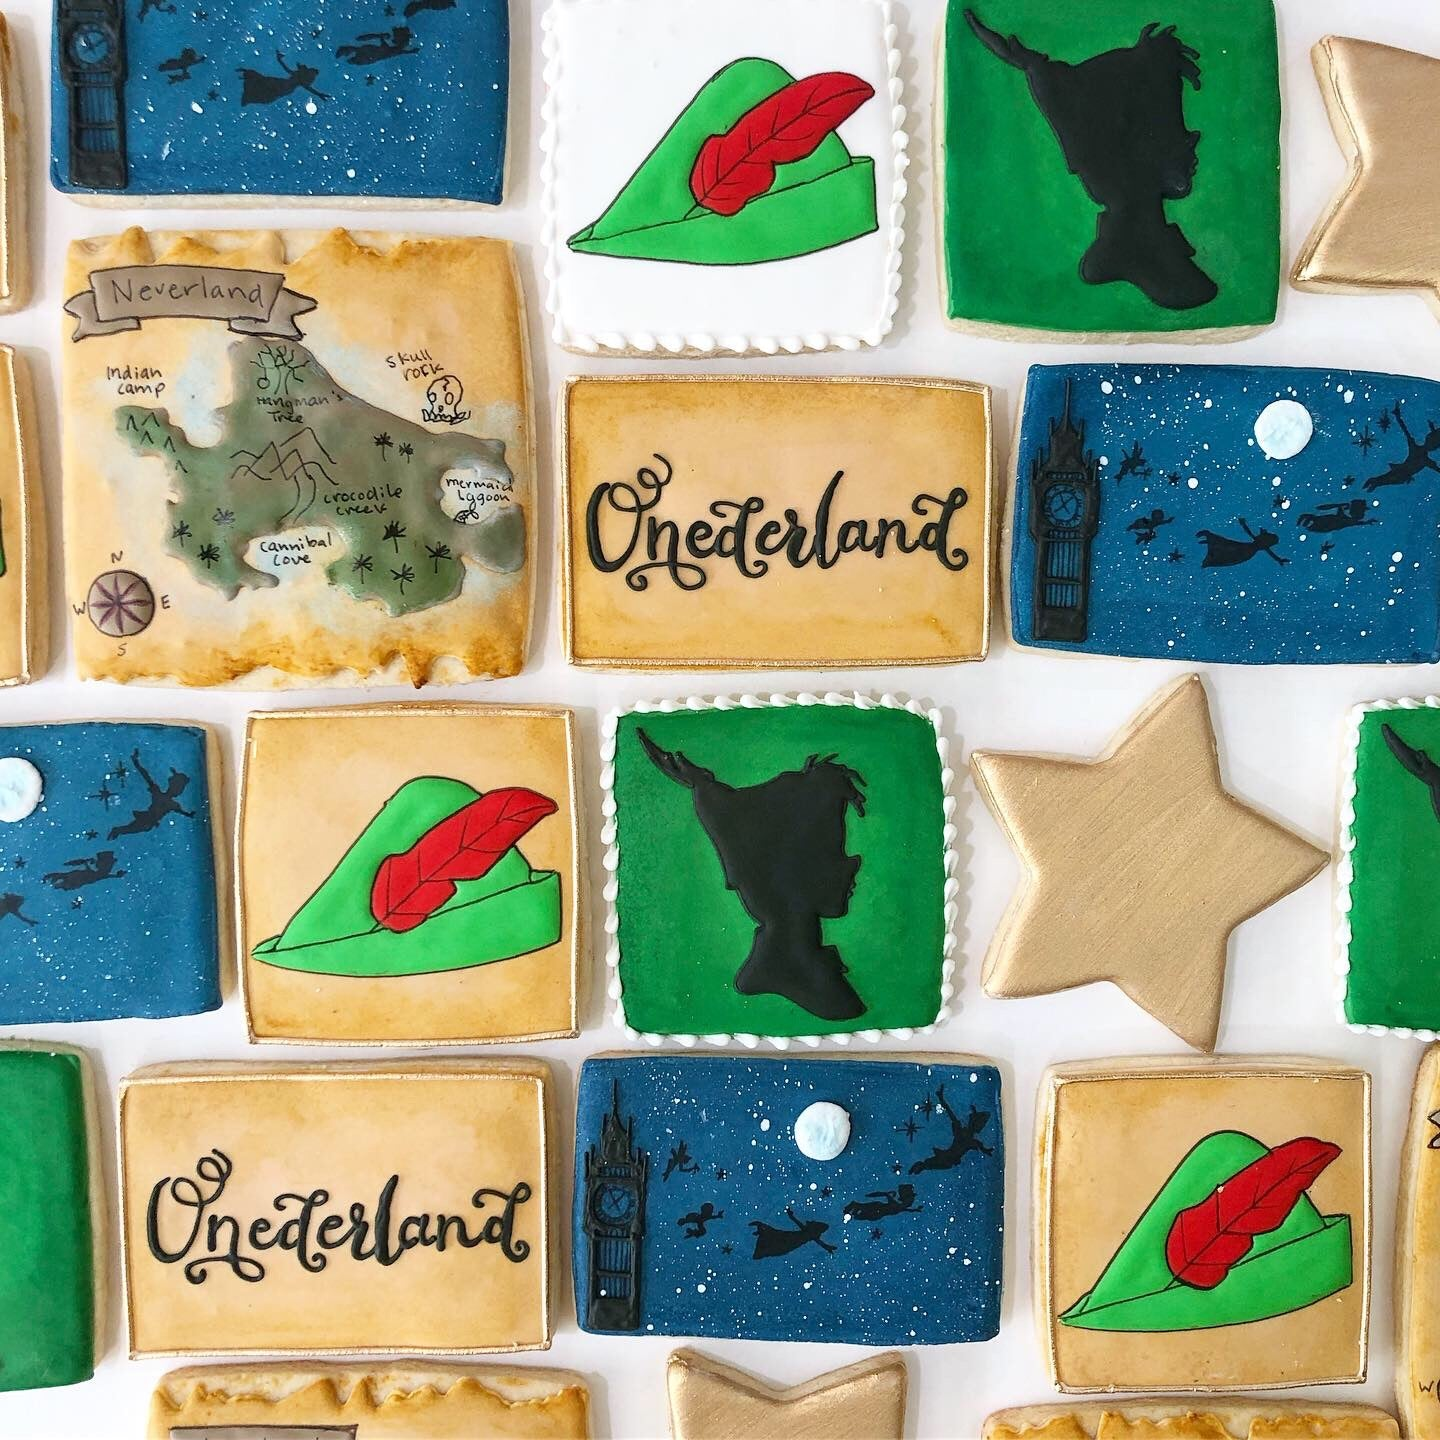 Peter Pan Sugar Cookie Set